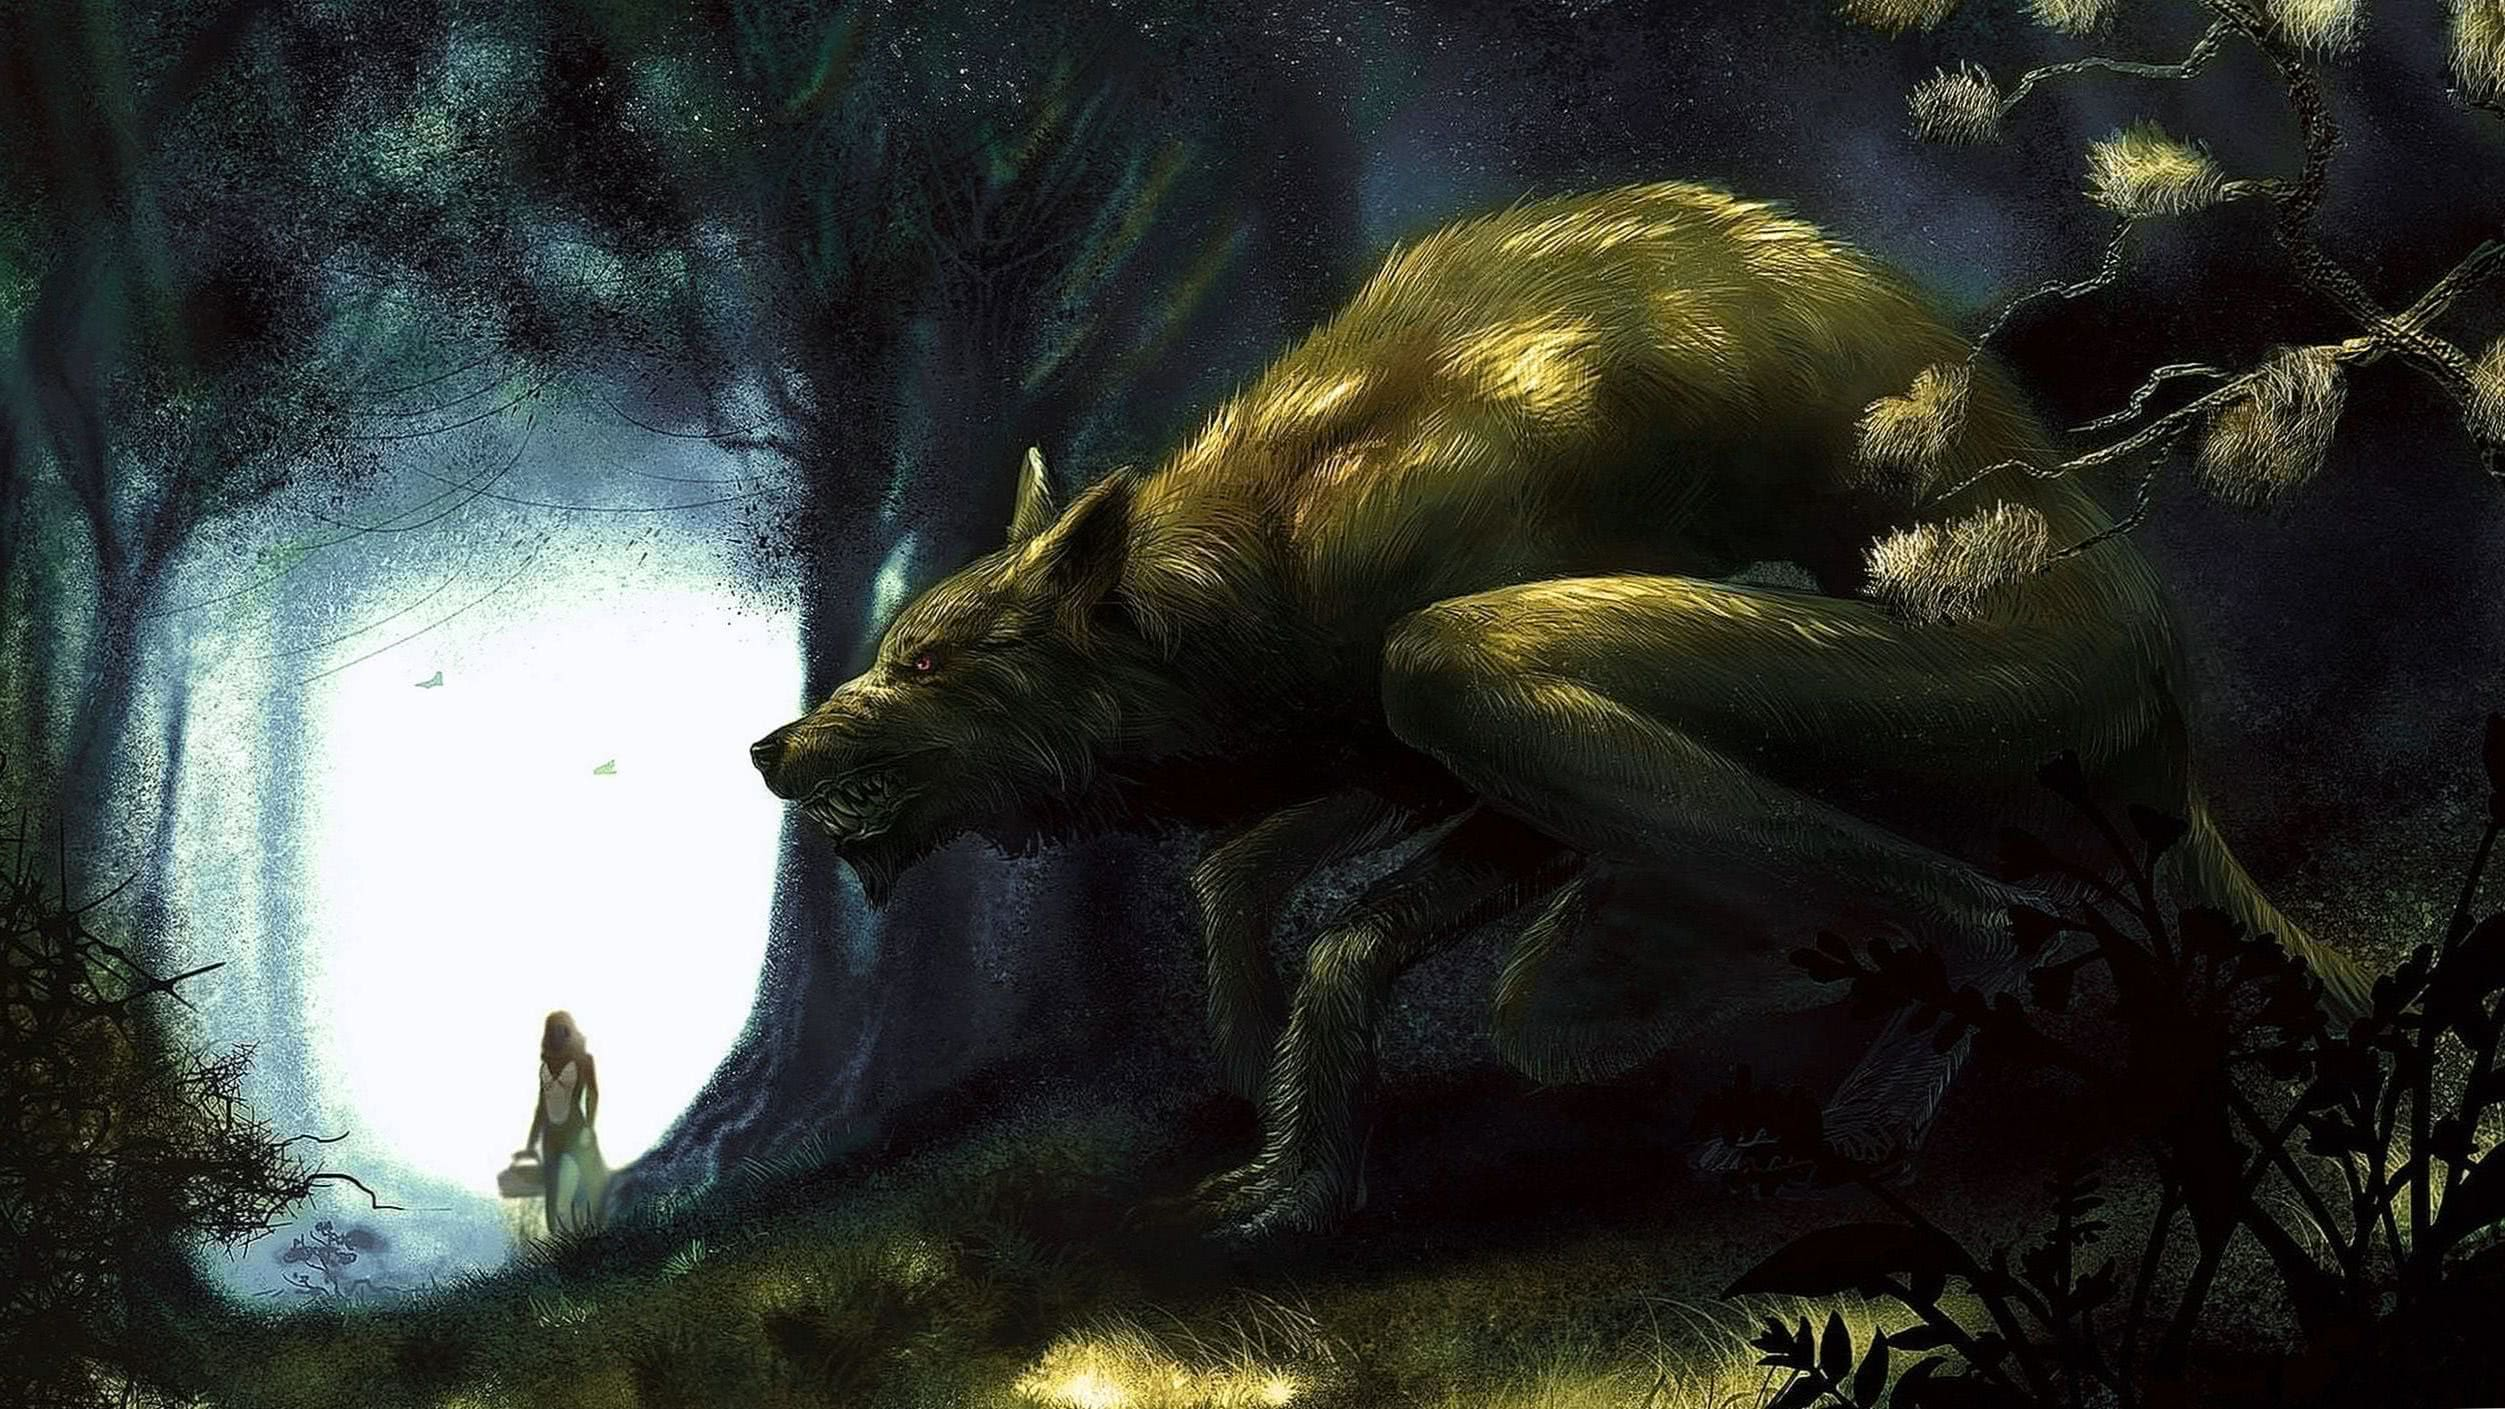 Werewolf HD Wallpaper Mobile